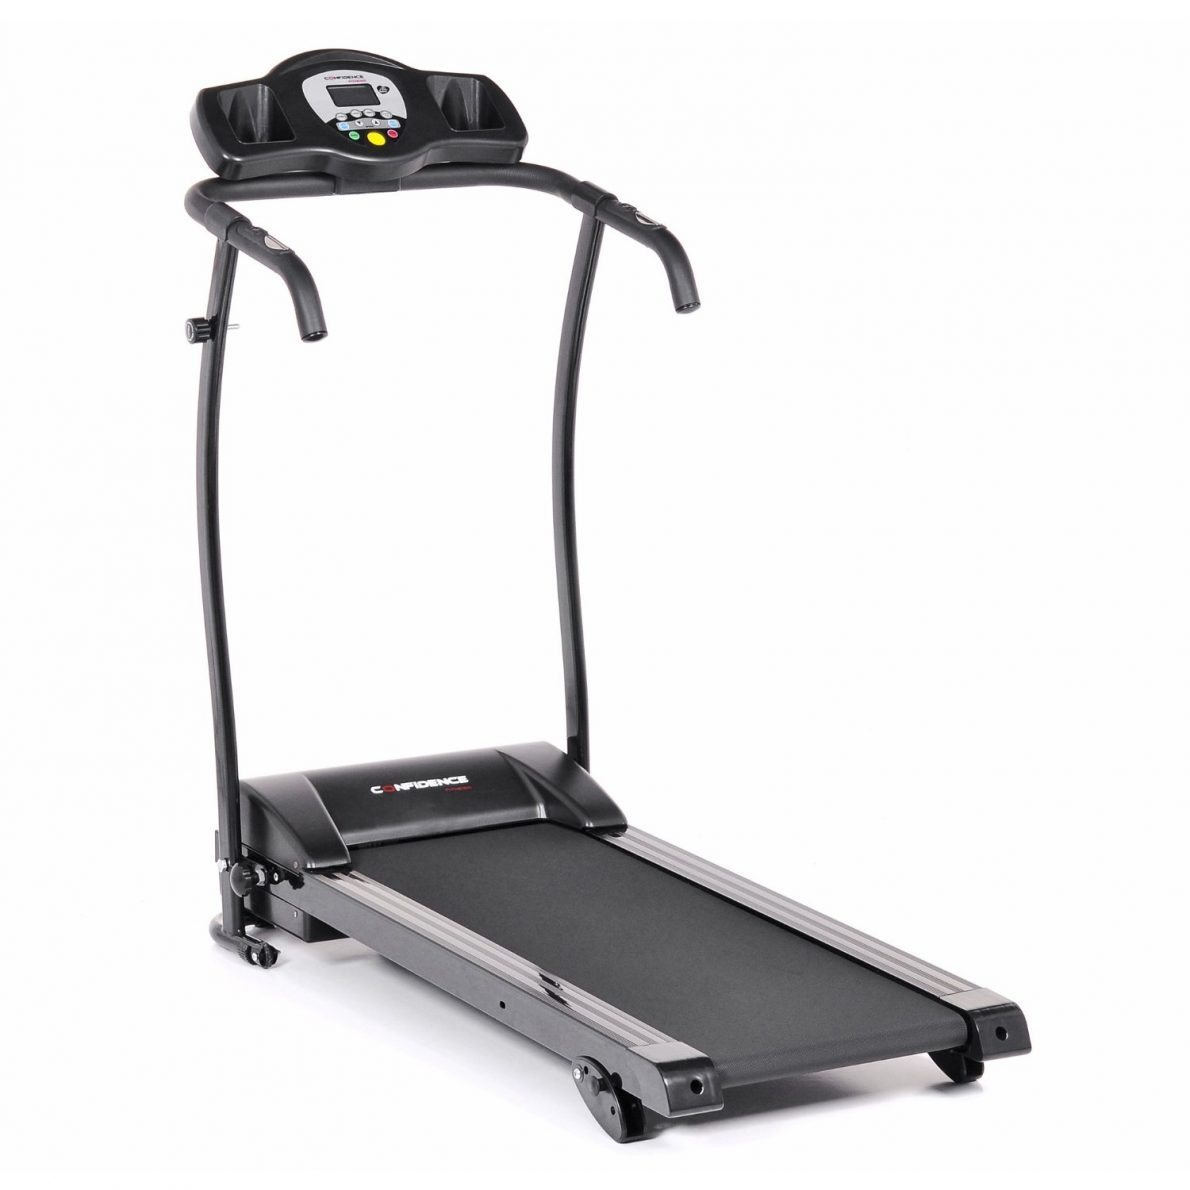 Confidence GTR Power Pro Motorized Electric Treadmill with adjustable incline Review